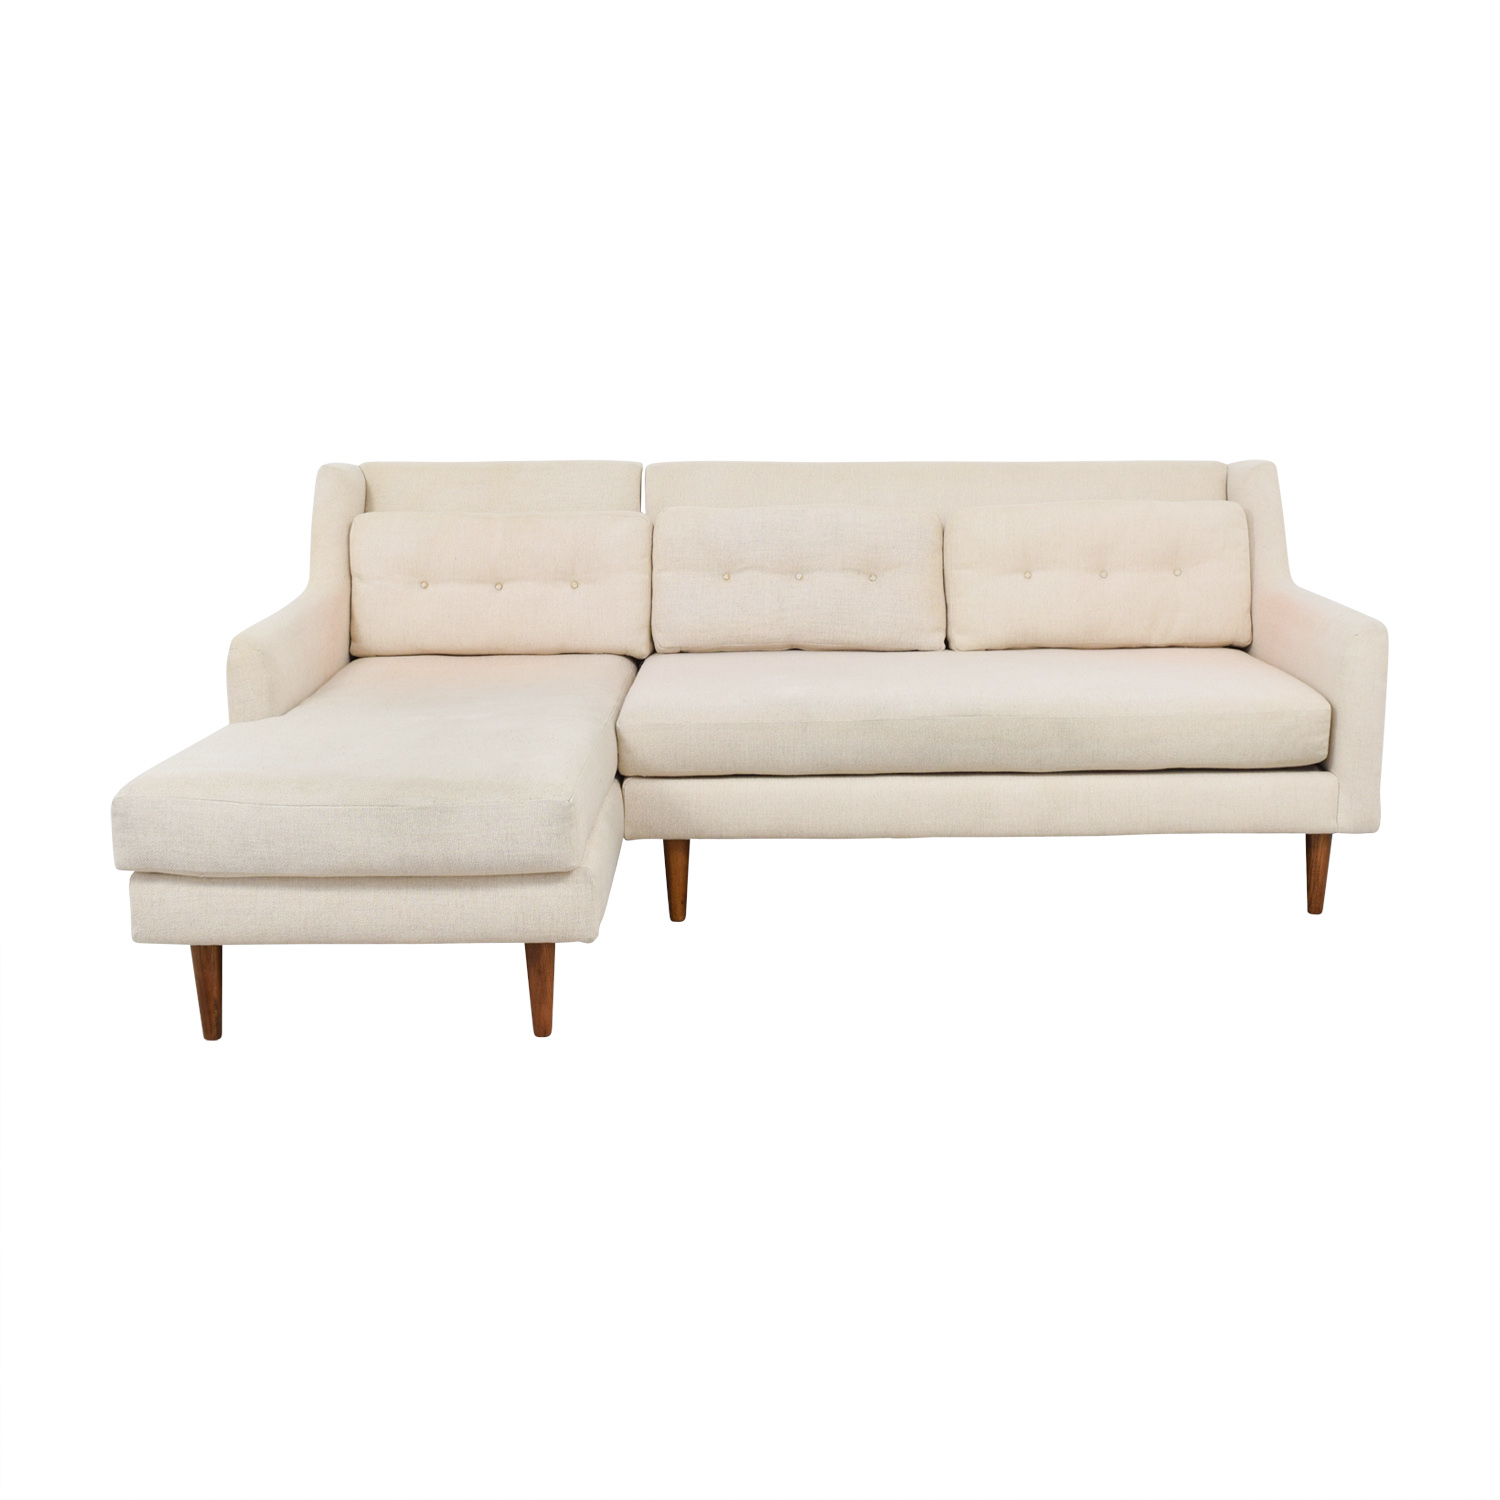 West Elm West Elm Beige Mid Century 2-Piece Crosby Chaise Sectional Sofa